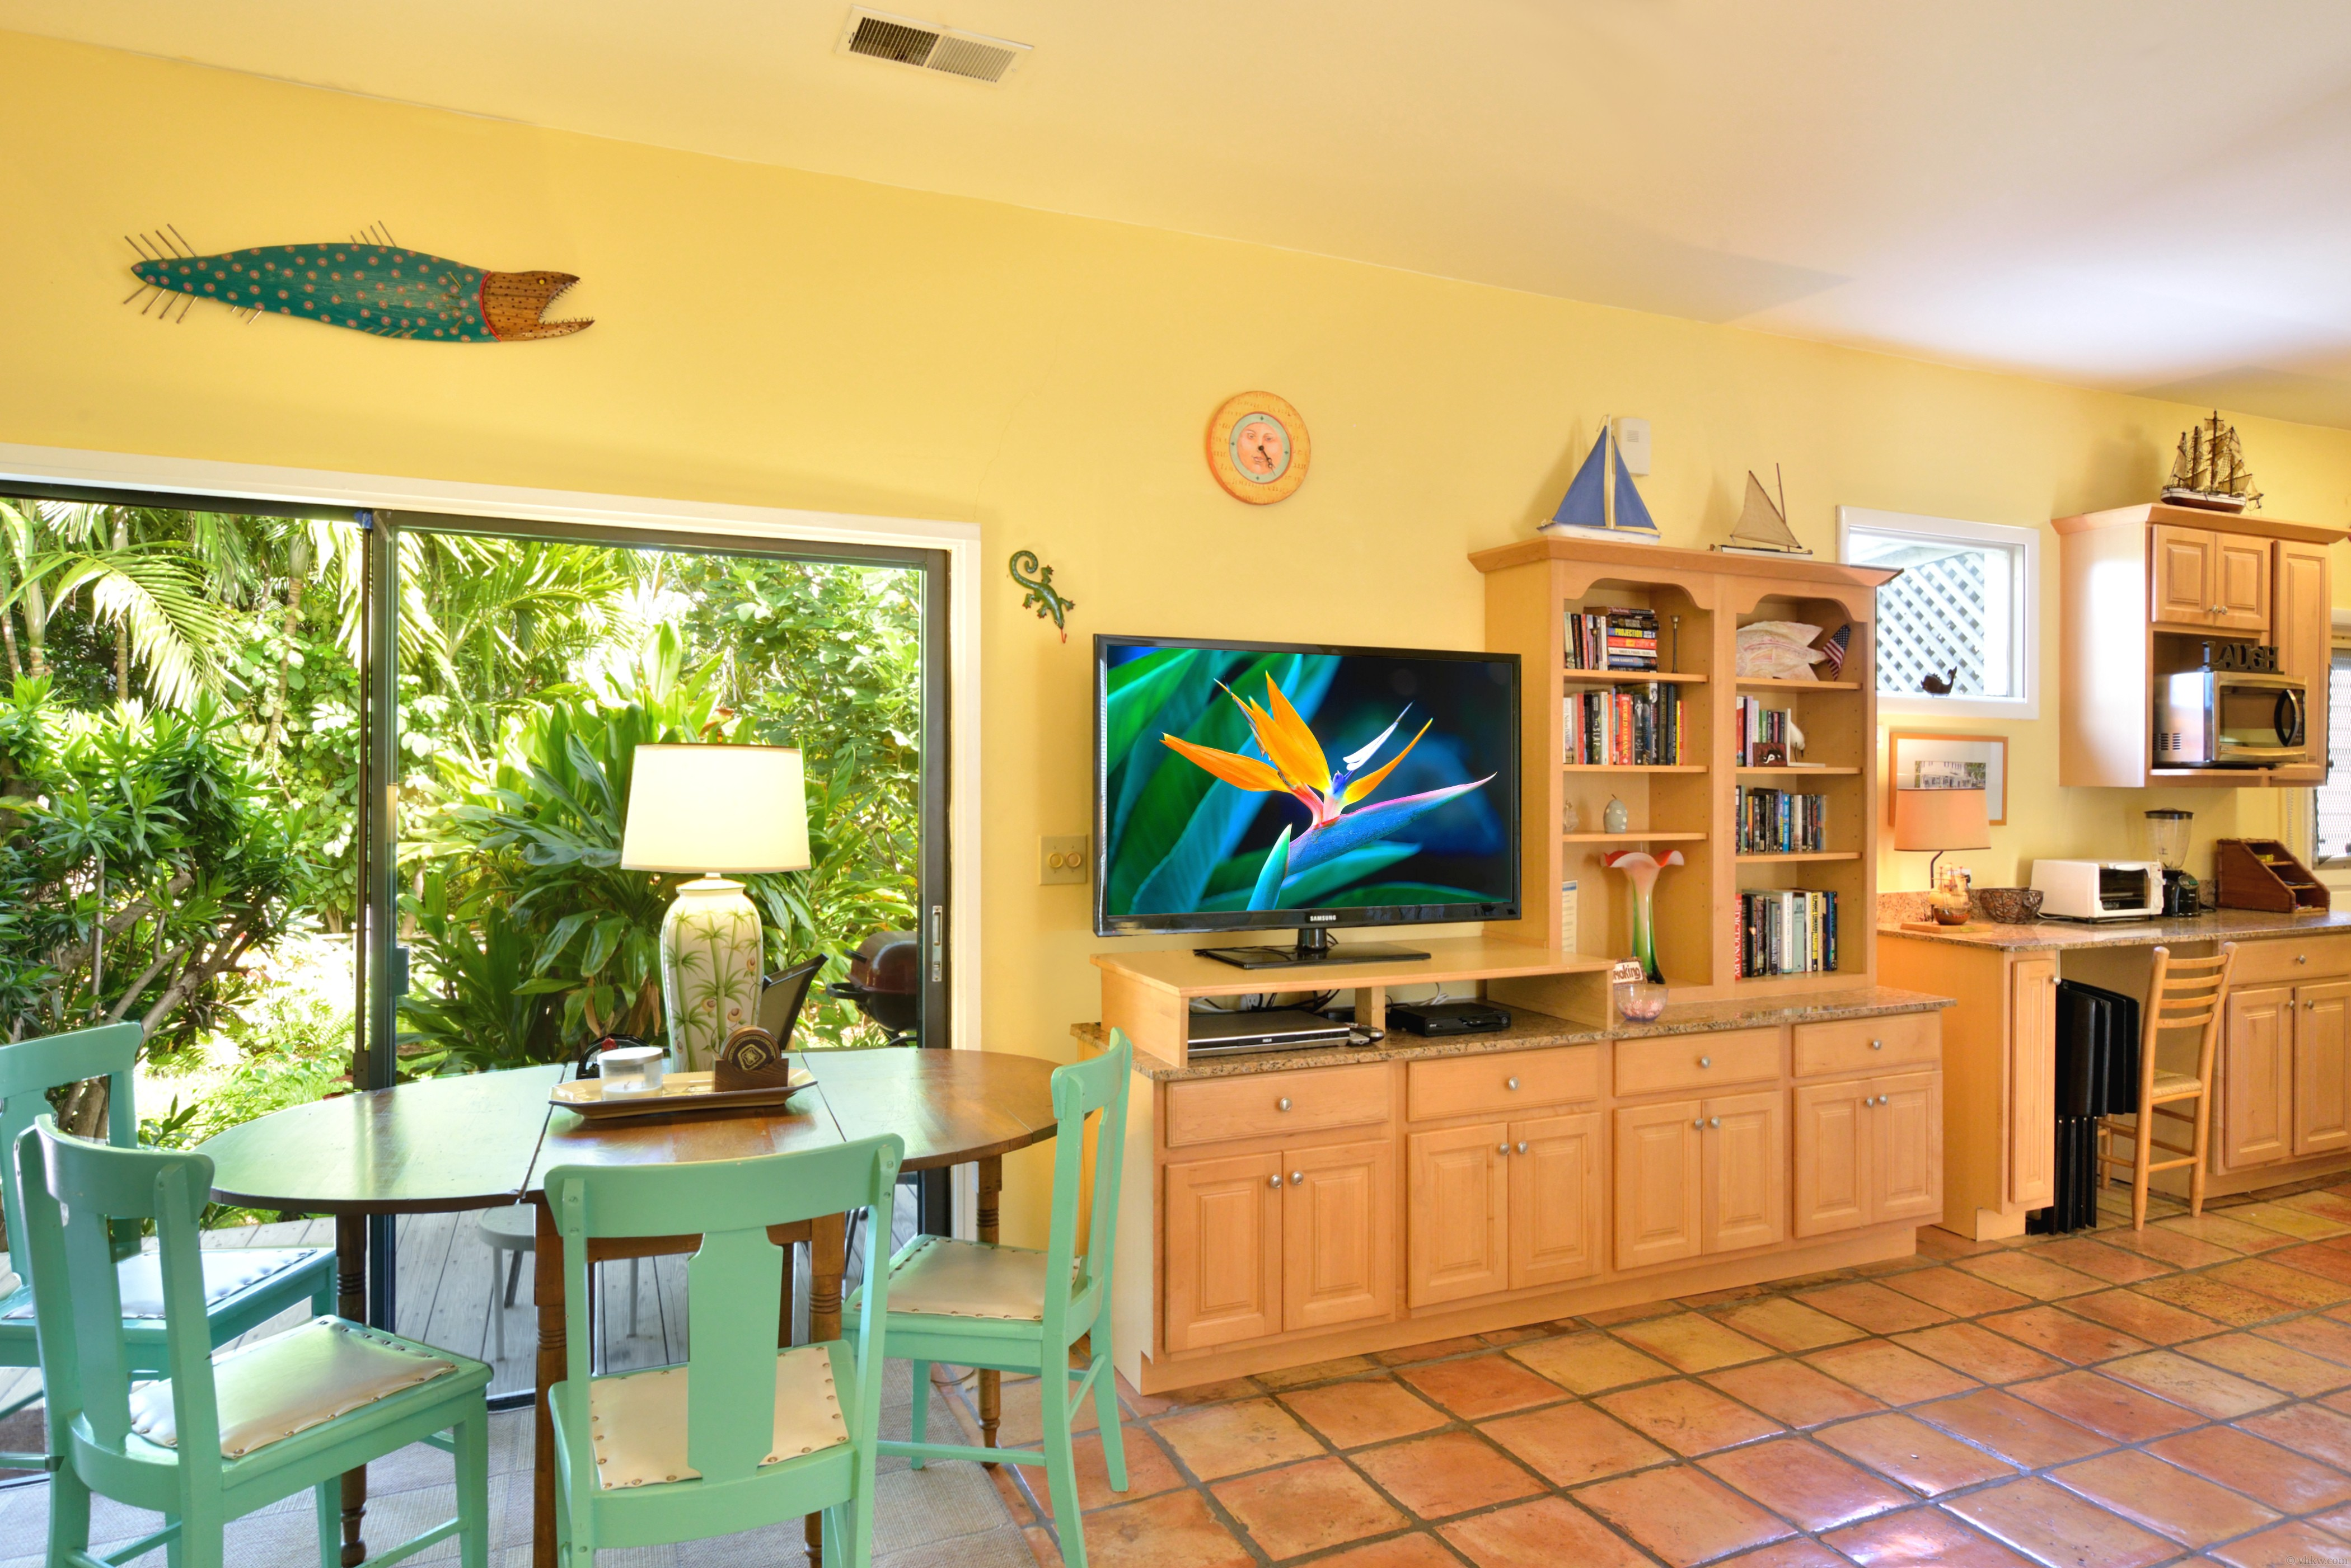 properties key rental booking bamboo realty by bahamian west all poolandhouse fl copy rentals cottage cottages last cfm